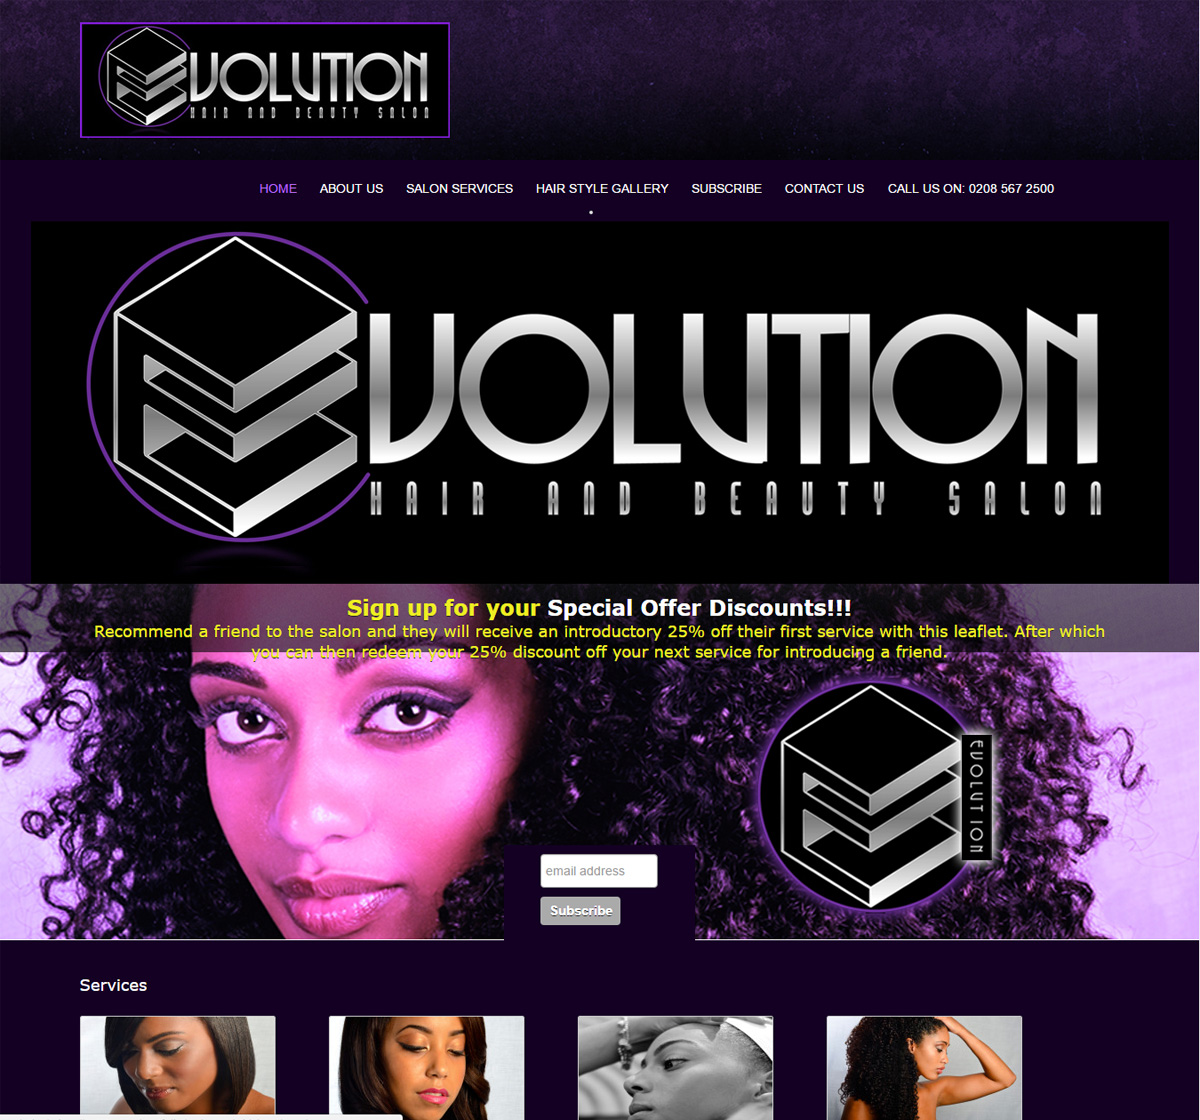 Evolution Hair and Beauty